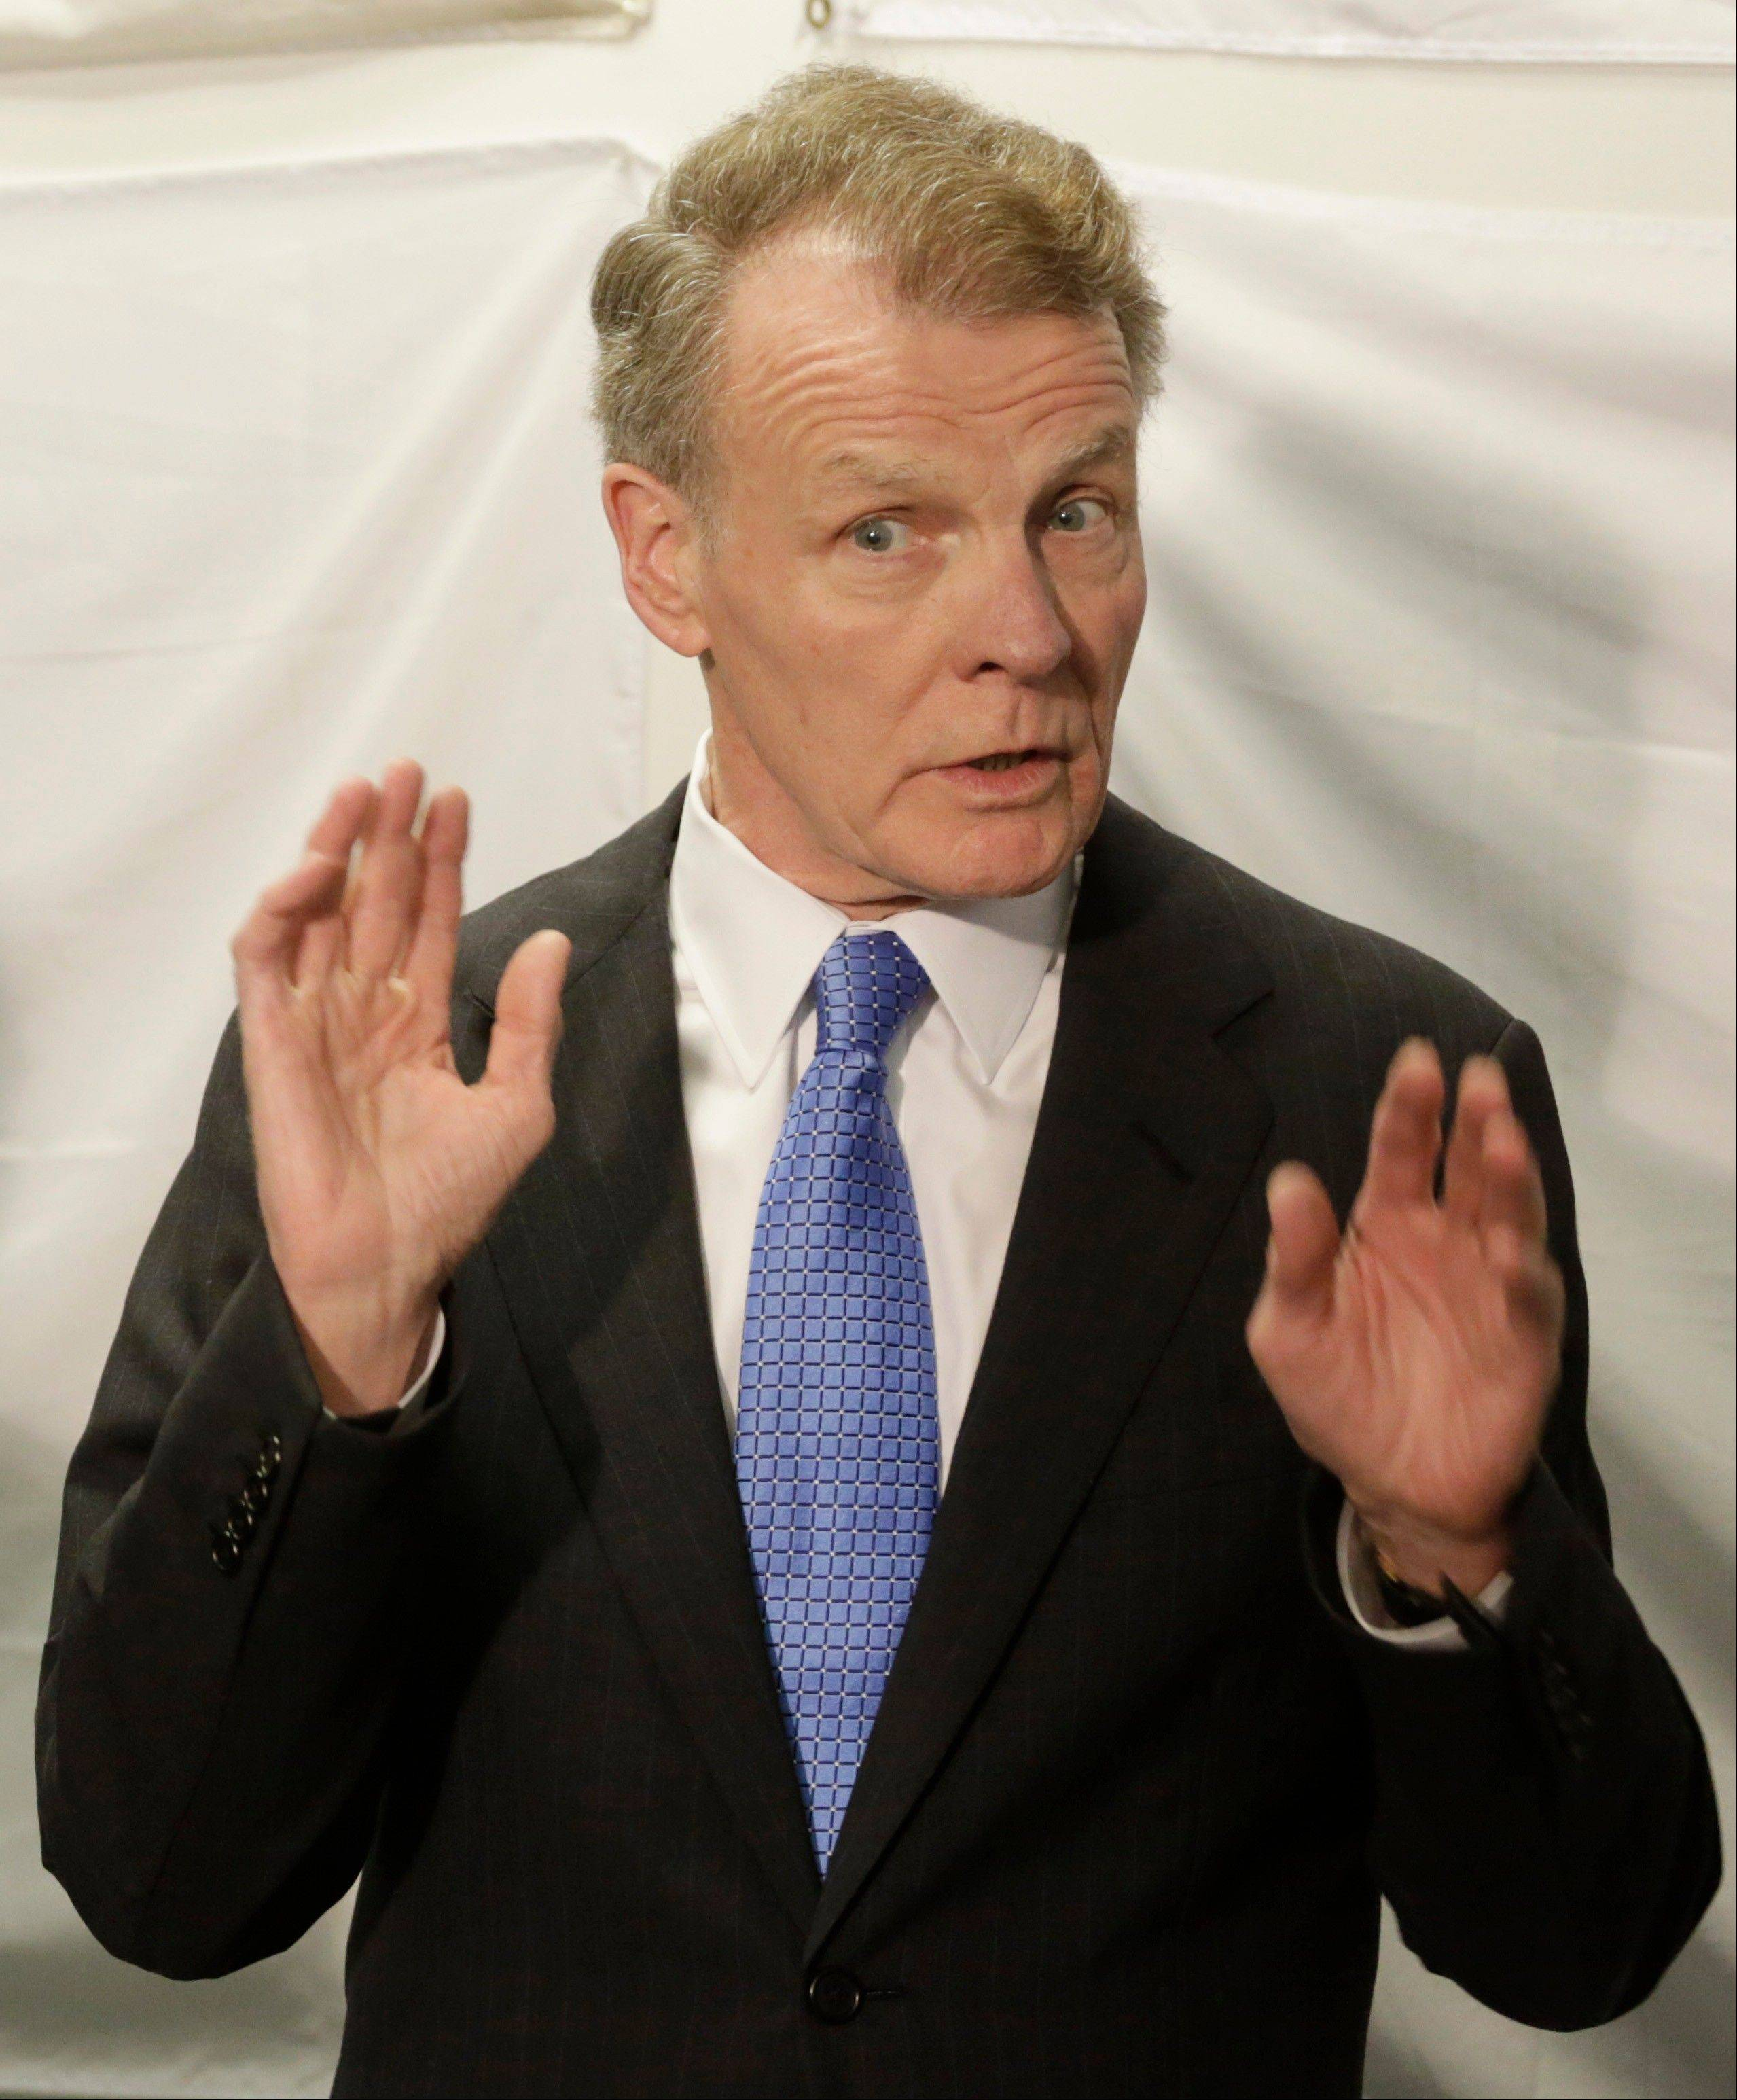 House Speaker Michael Madigan's pension plan, which is widely regarded as having the most cost savings, failed in the Senate last month. It unilaterally imposes pension changes on workers and raises the retirement age.